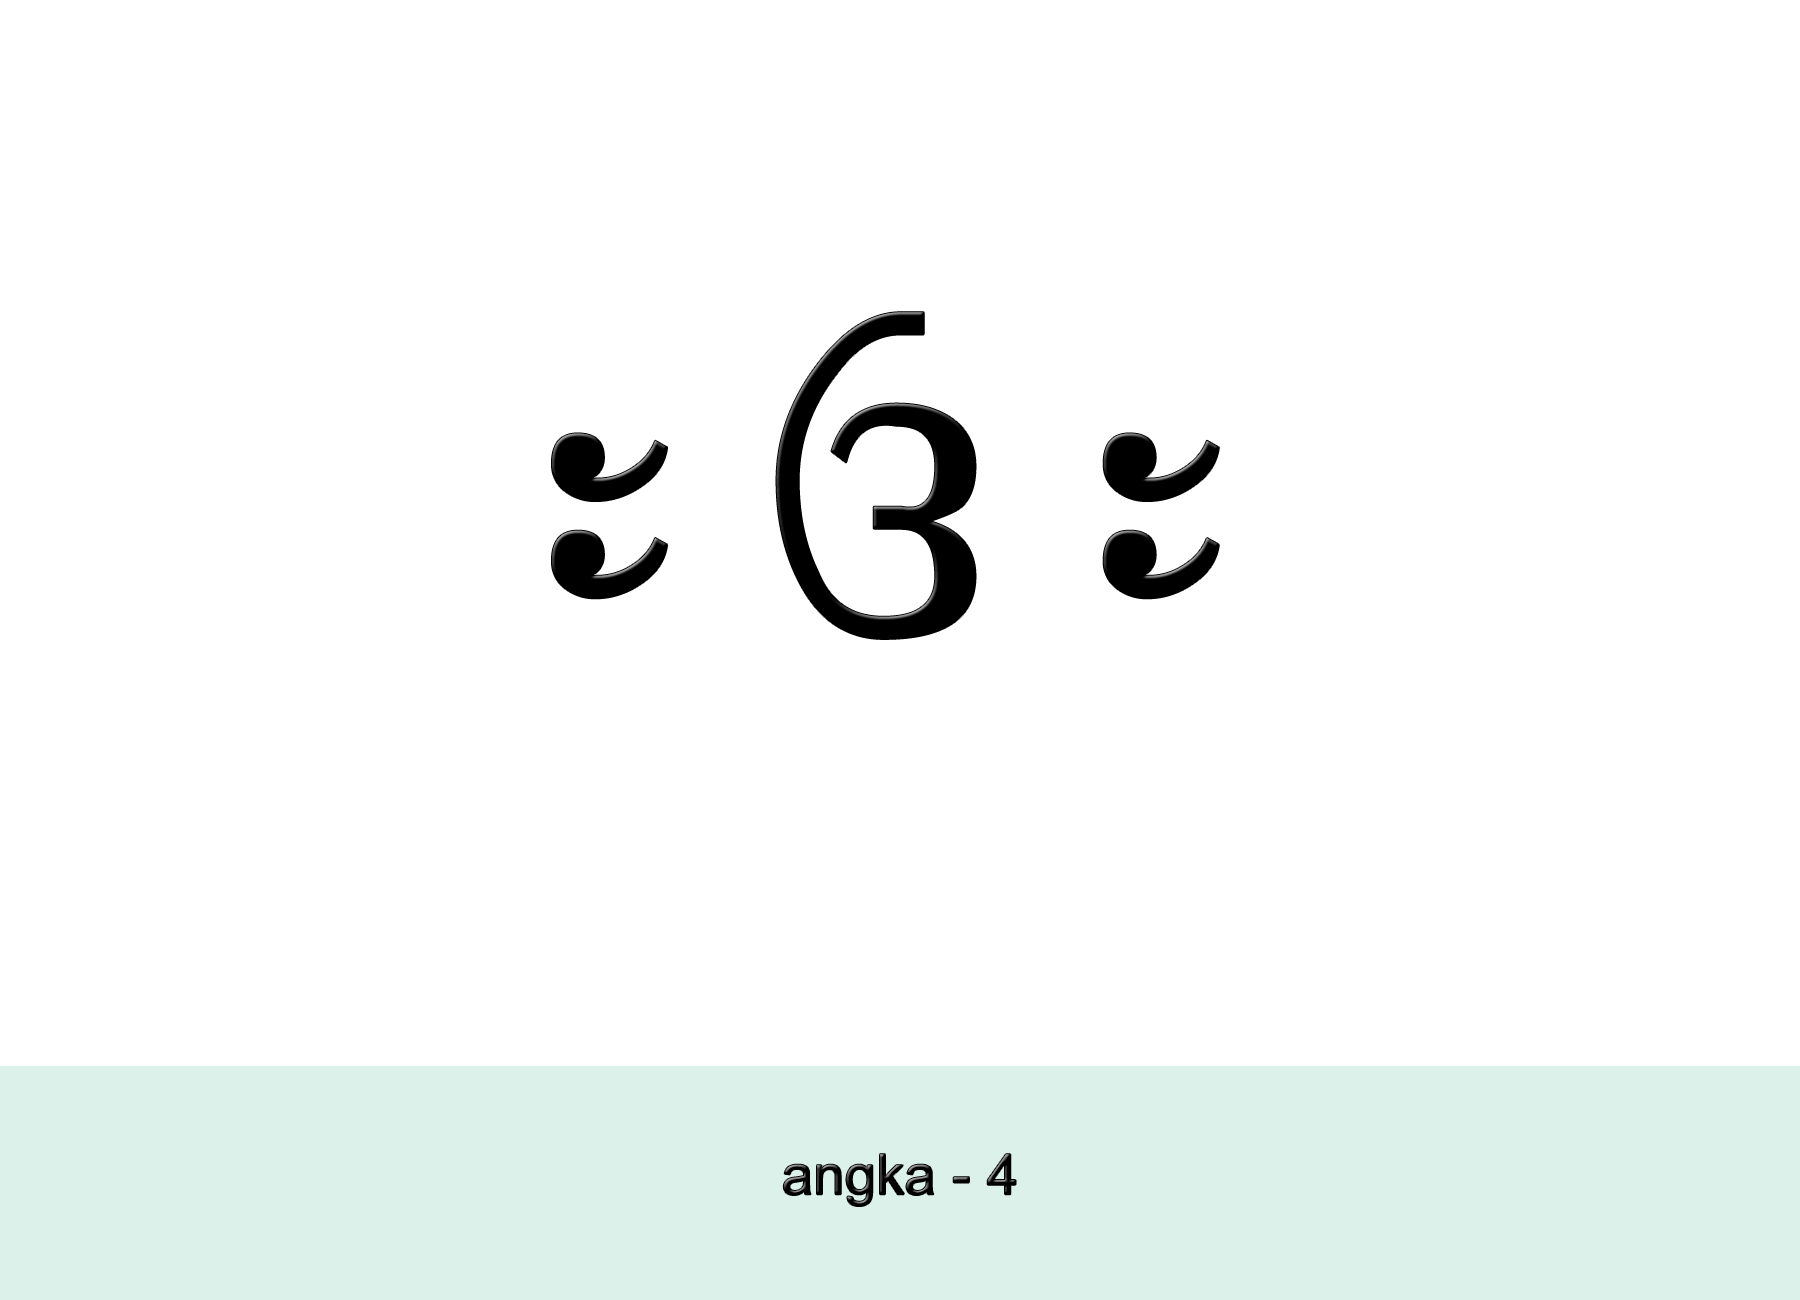 File:Angka---4.png - Wikimedia Commons